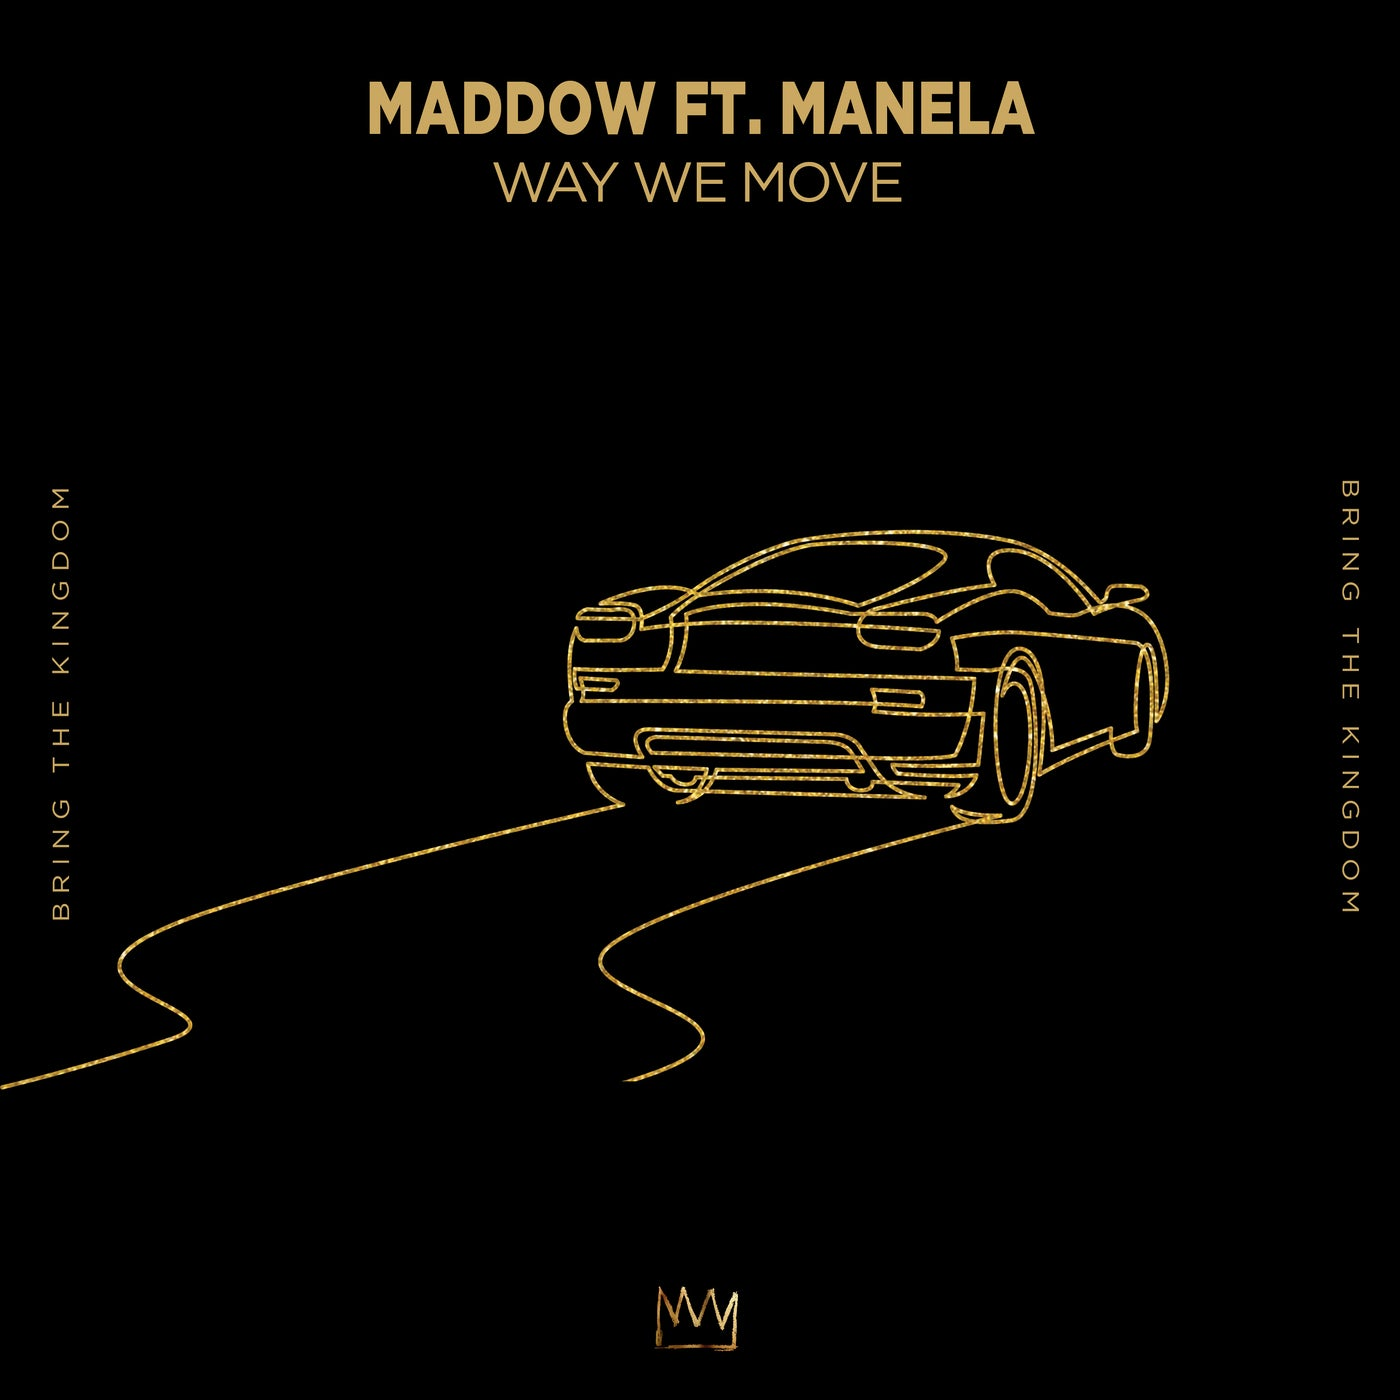 Way We Move feat. Manela (Extended Mix)